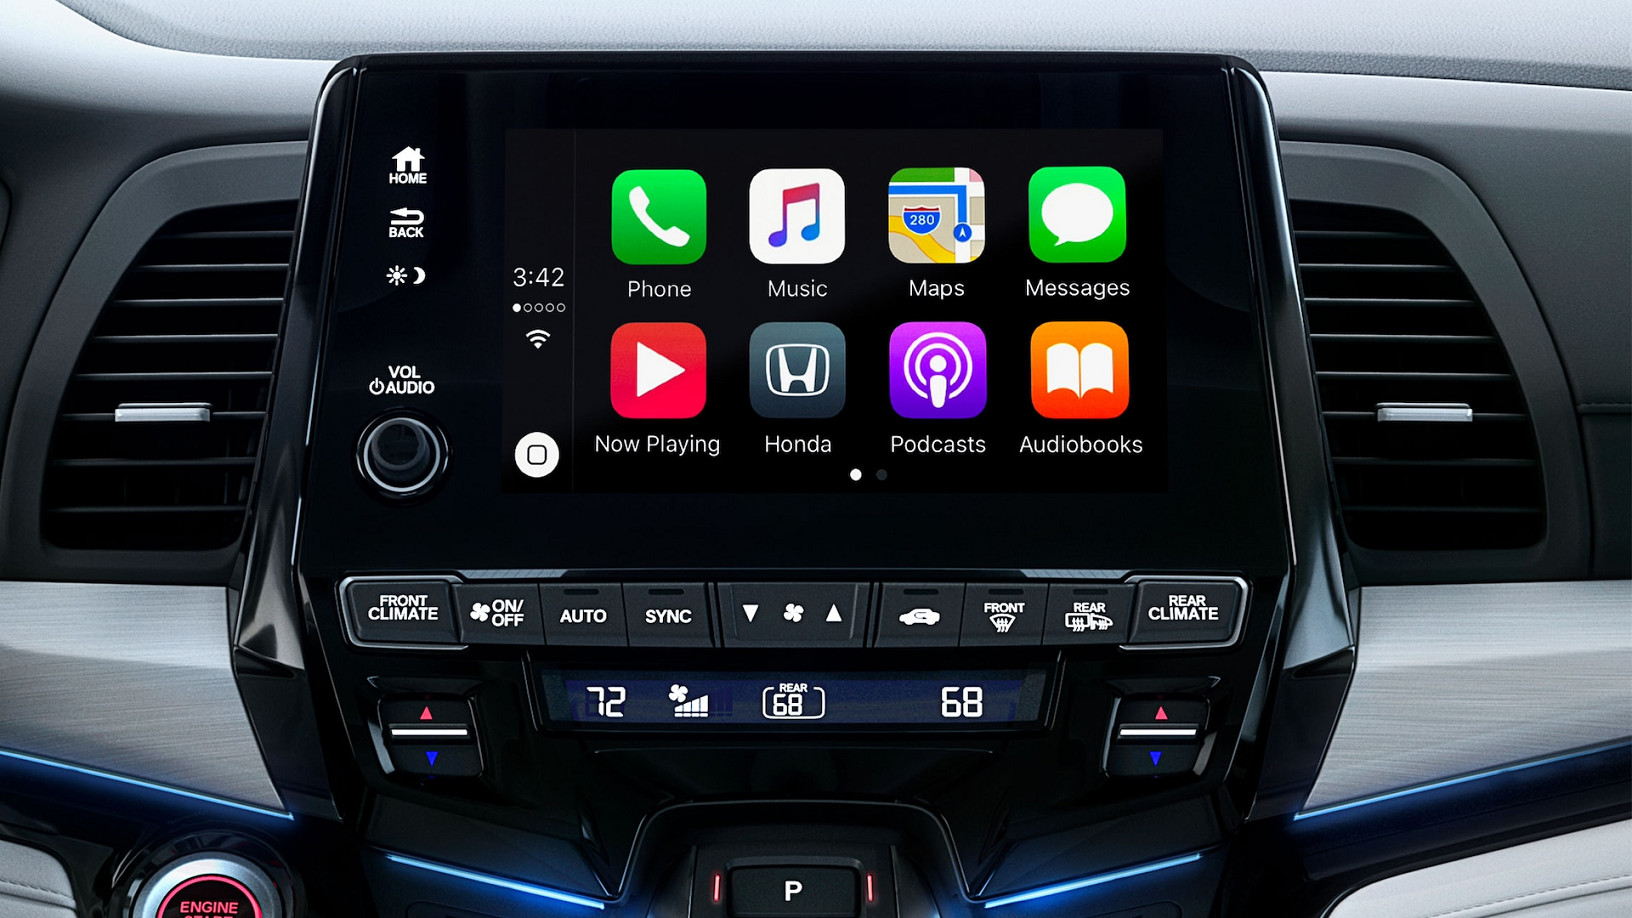 Available Apple CarPlay™ in the 2020 Honda Odyssey